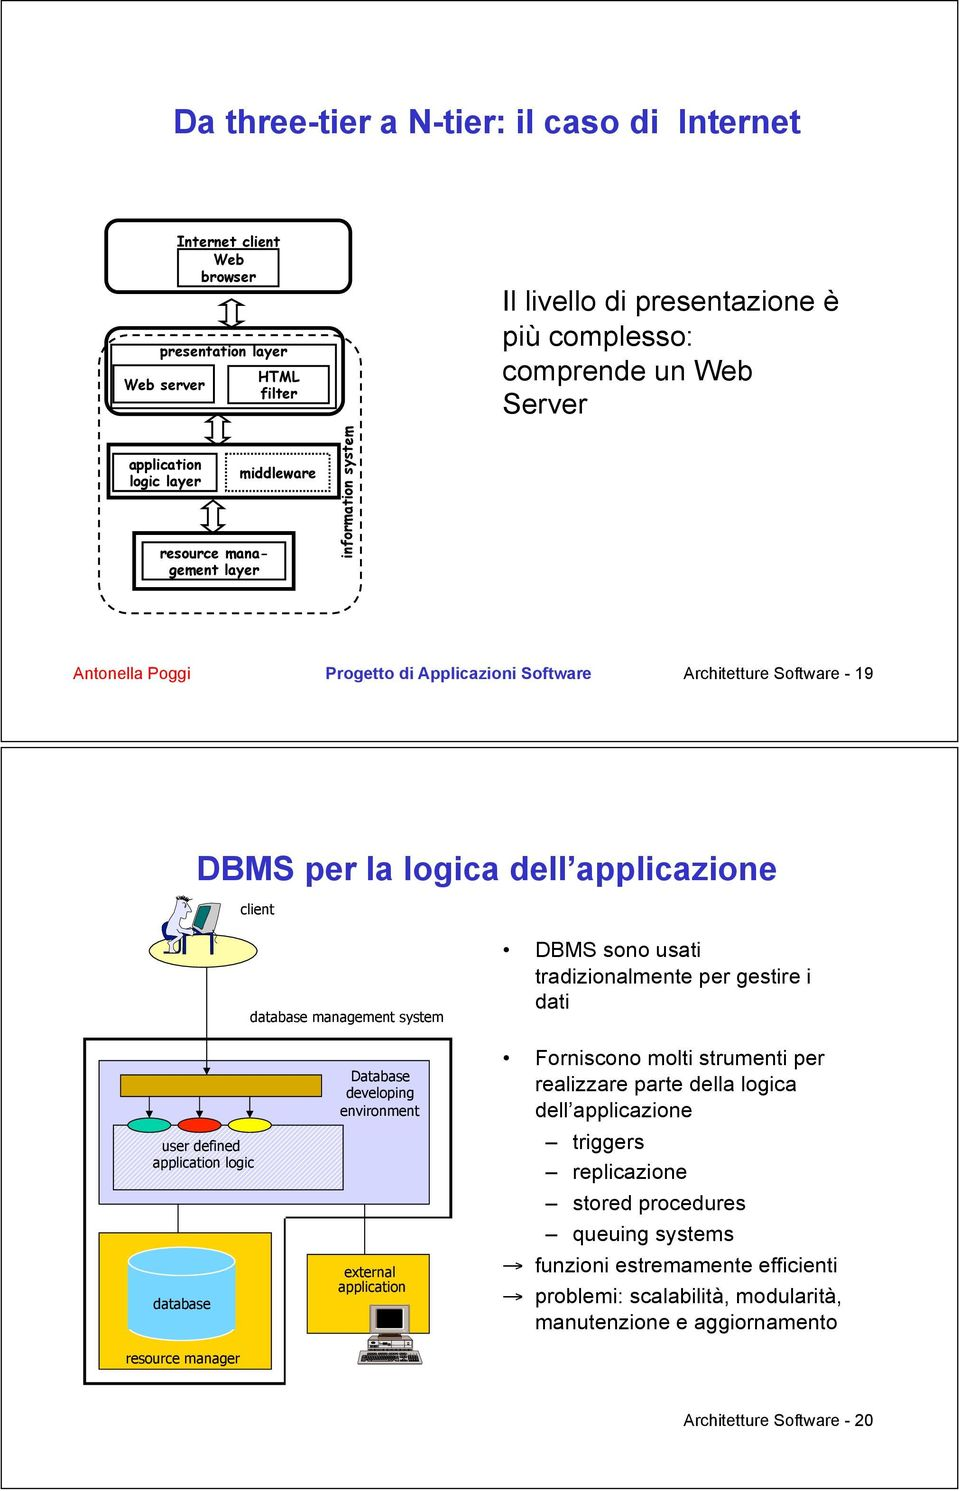 tradizionalmente per gestire i dati user defined database resource manager Database developing environment external application Forniscono molti strumenti per realizzare parte della